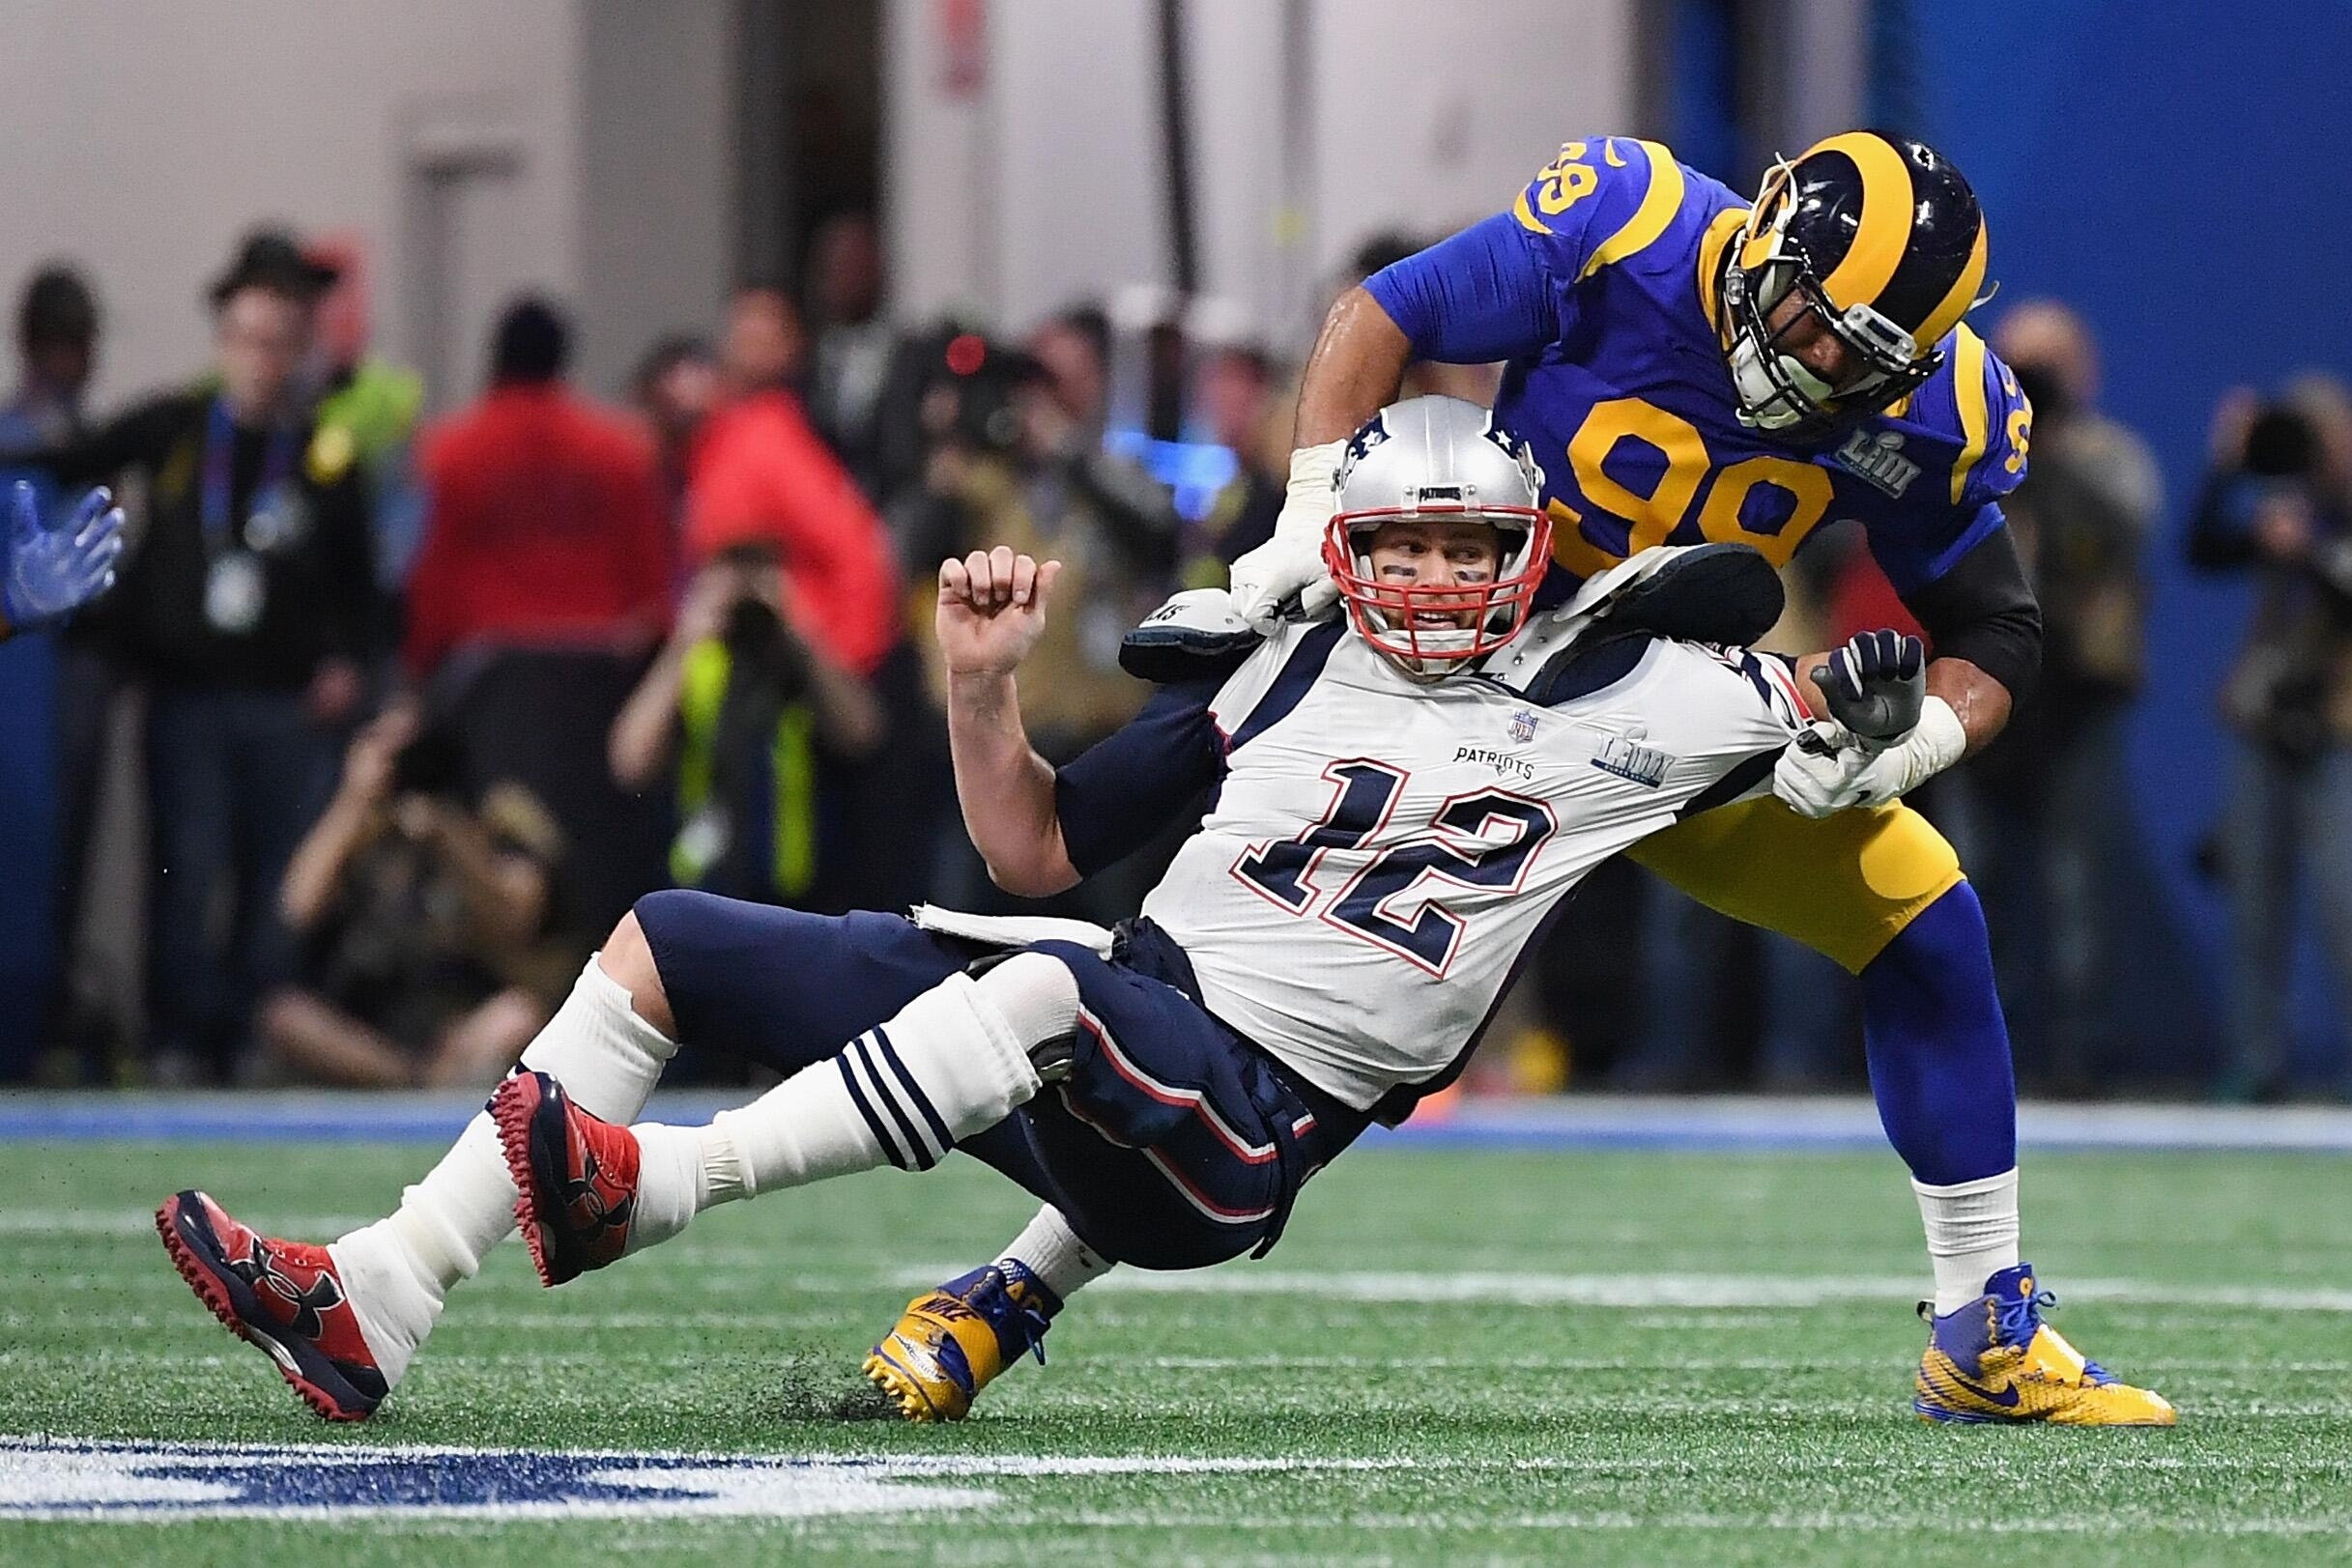 Super Bowl Live-Ticker: New England Patriots - Los Angeles intended for Super Bowl 2019 Showtime